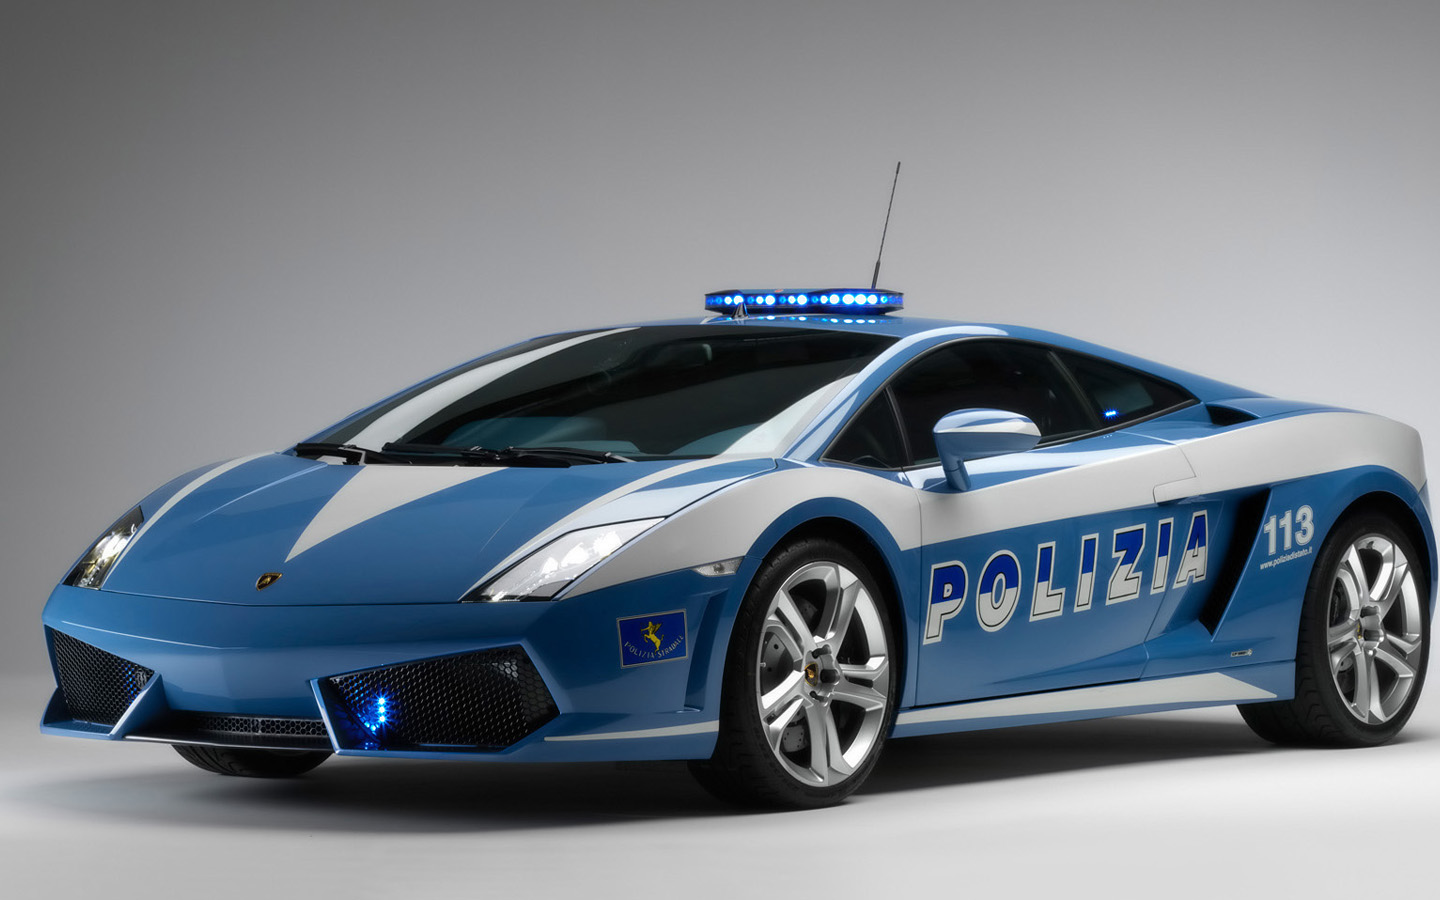 Lamborghini Gallardo Police Car Wallpaper | Best Image Background on car backgrounds bmw, car backgrounds white, car backgrounds mustang, car backgrounds audi, car backgrounds jeep,